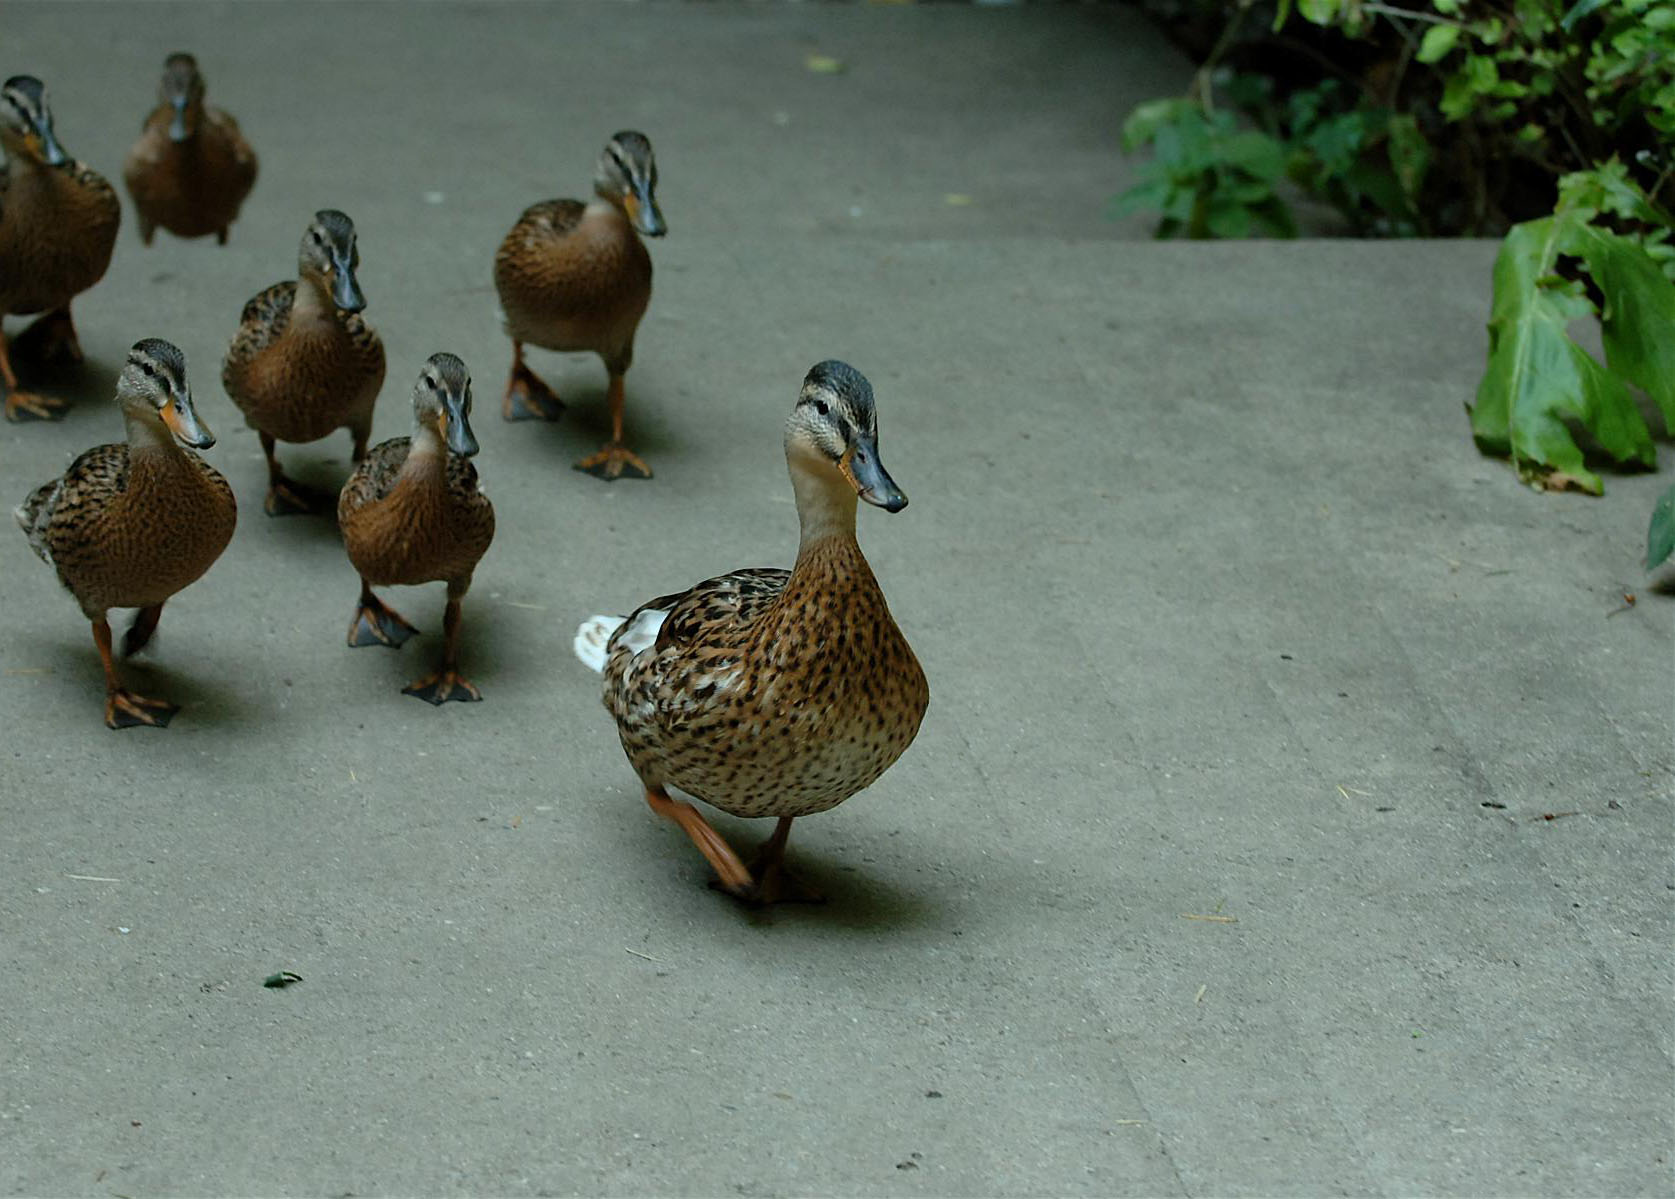 Line of ducks following each other